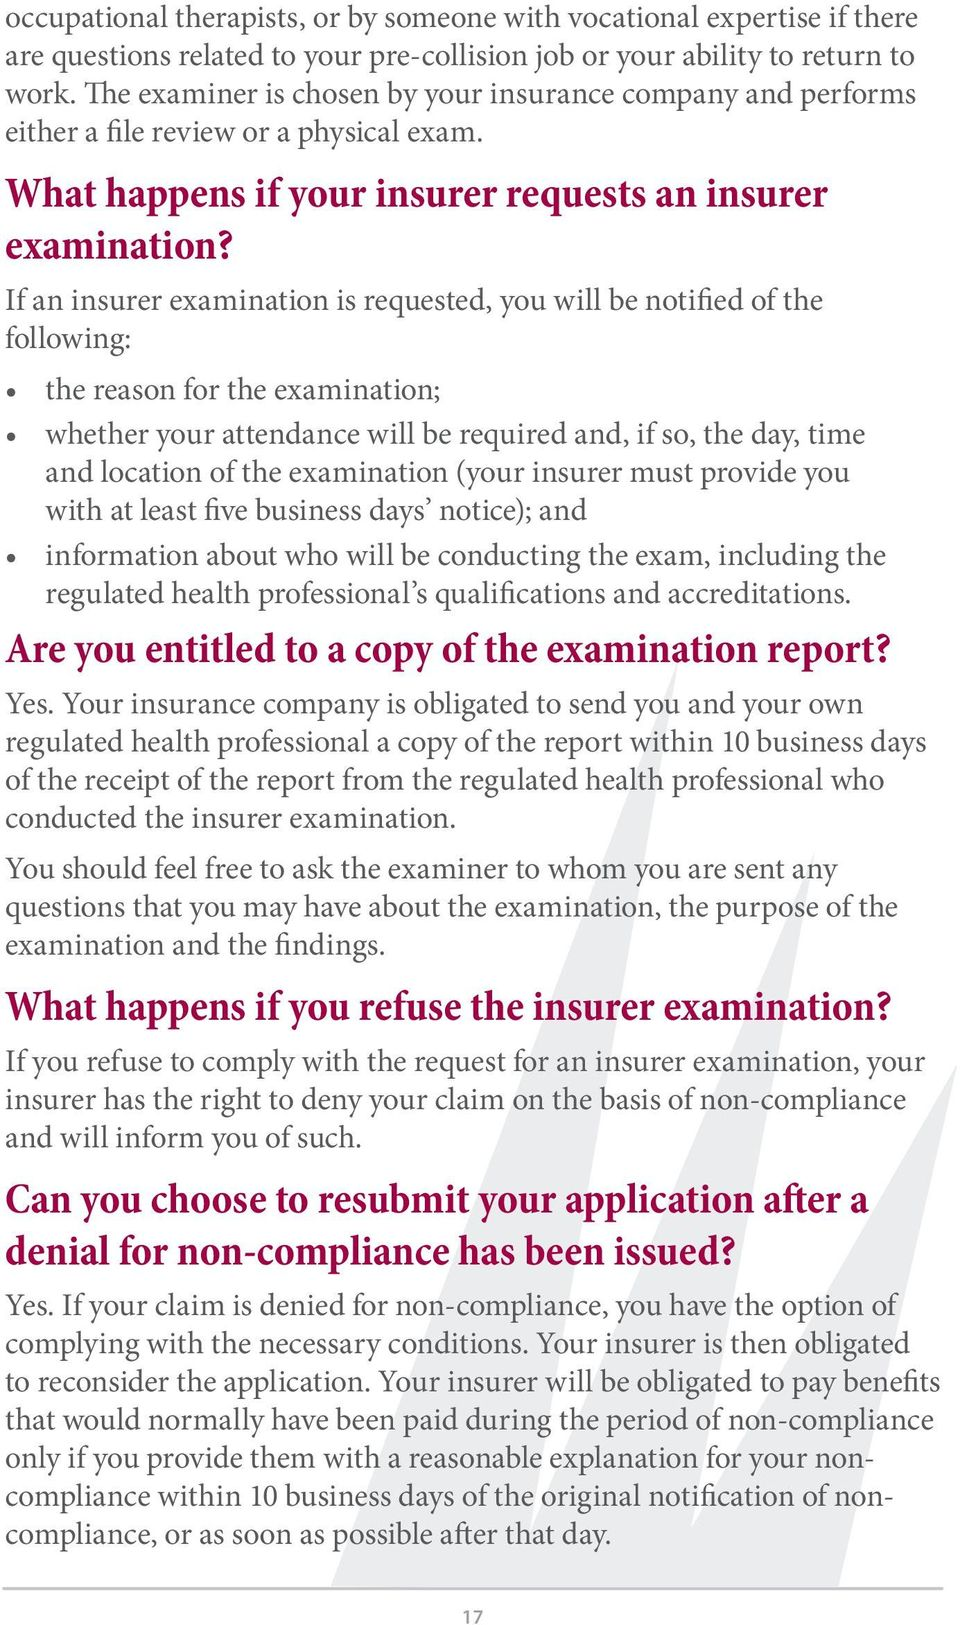 If an insurer examination is requested, you will be notified of the following: the reason for the examination; whether your attendance will be required and, if so, the day, time and location of the